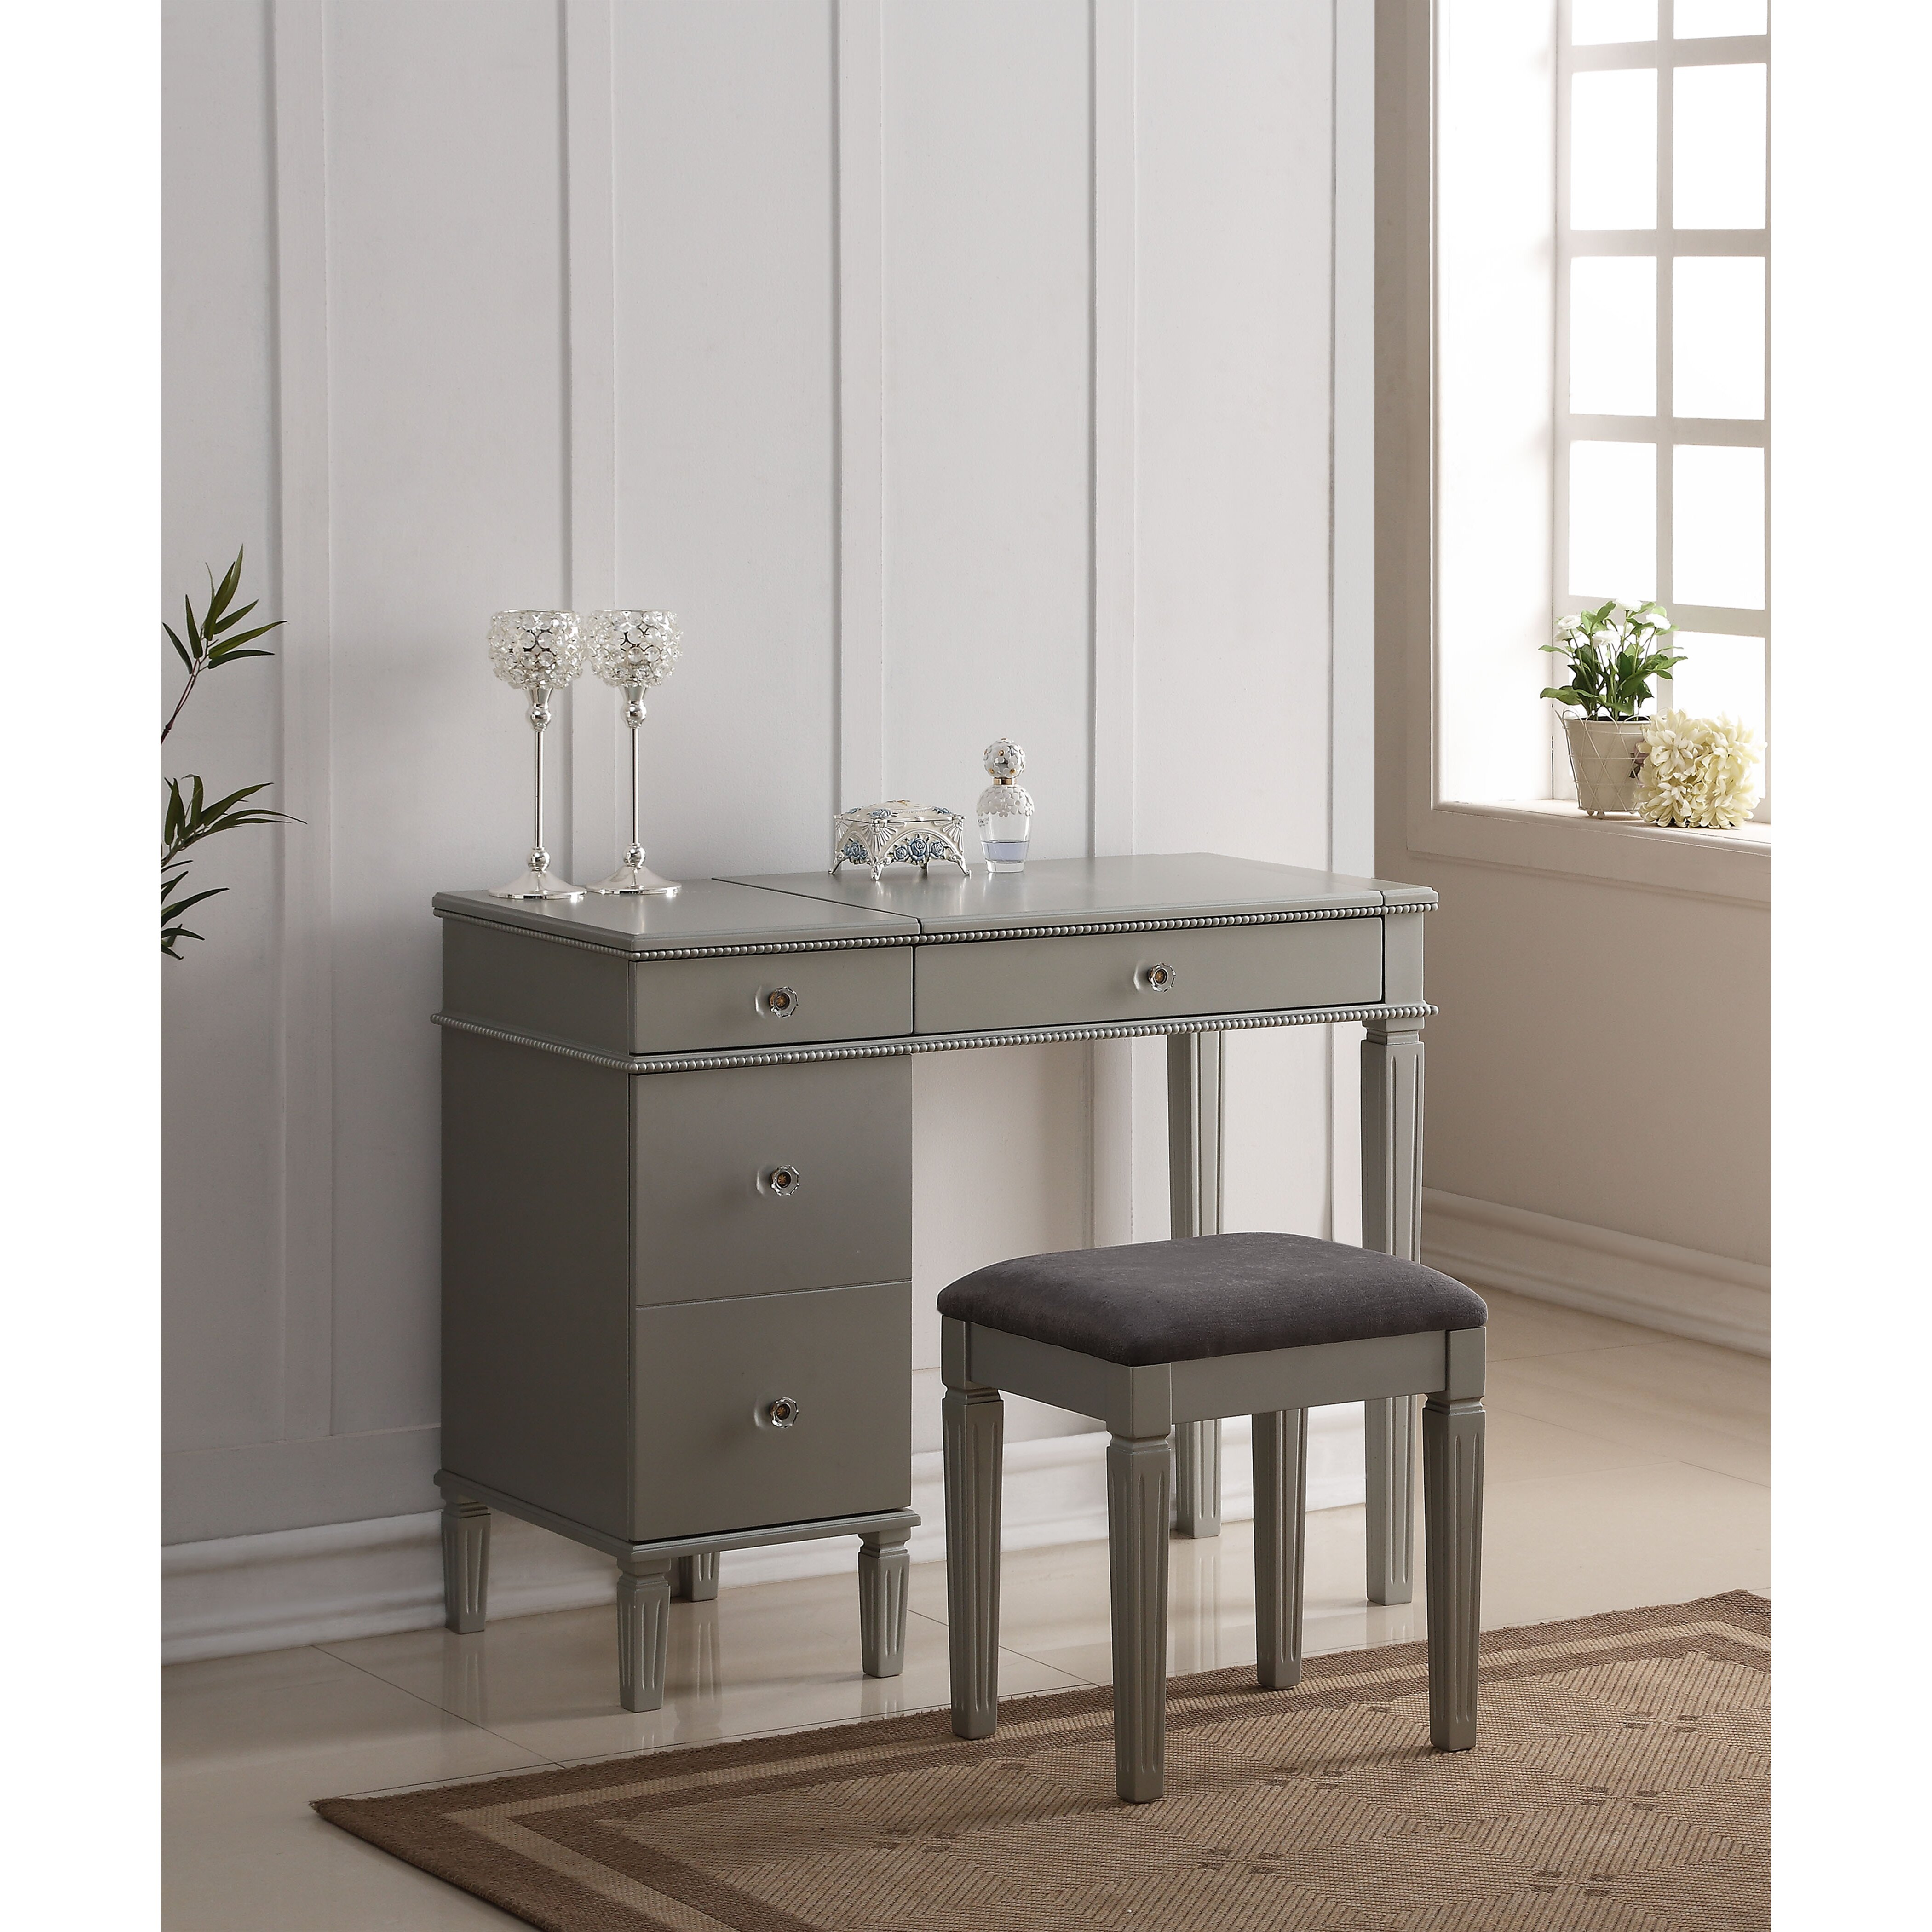 Two Piece Vanity Sets: House Of Hampton 2 Piece Vanity Set With Mirror & Reviews